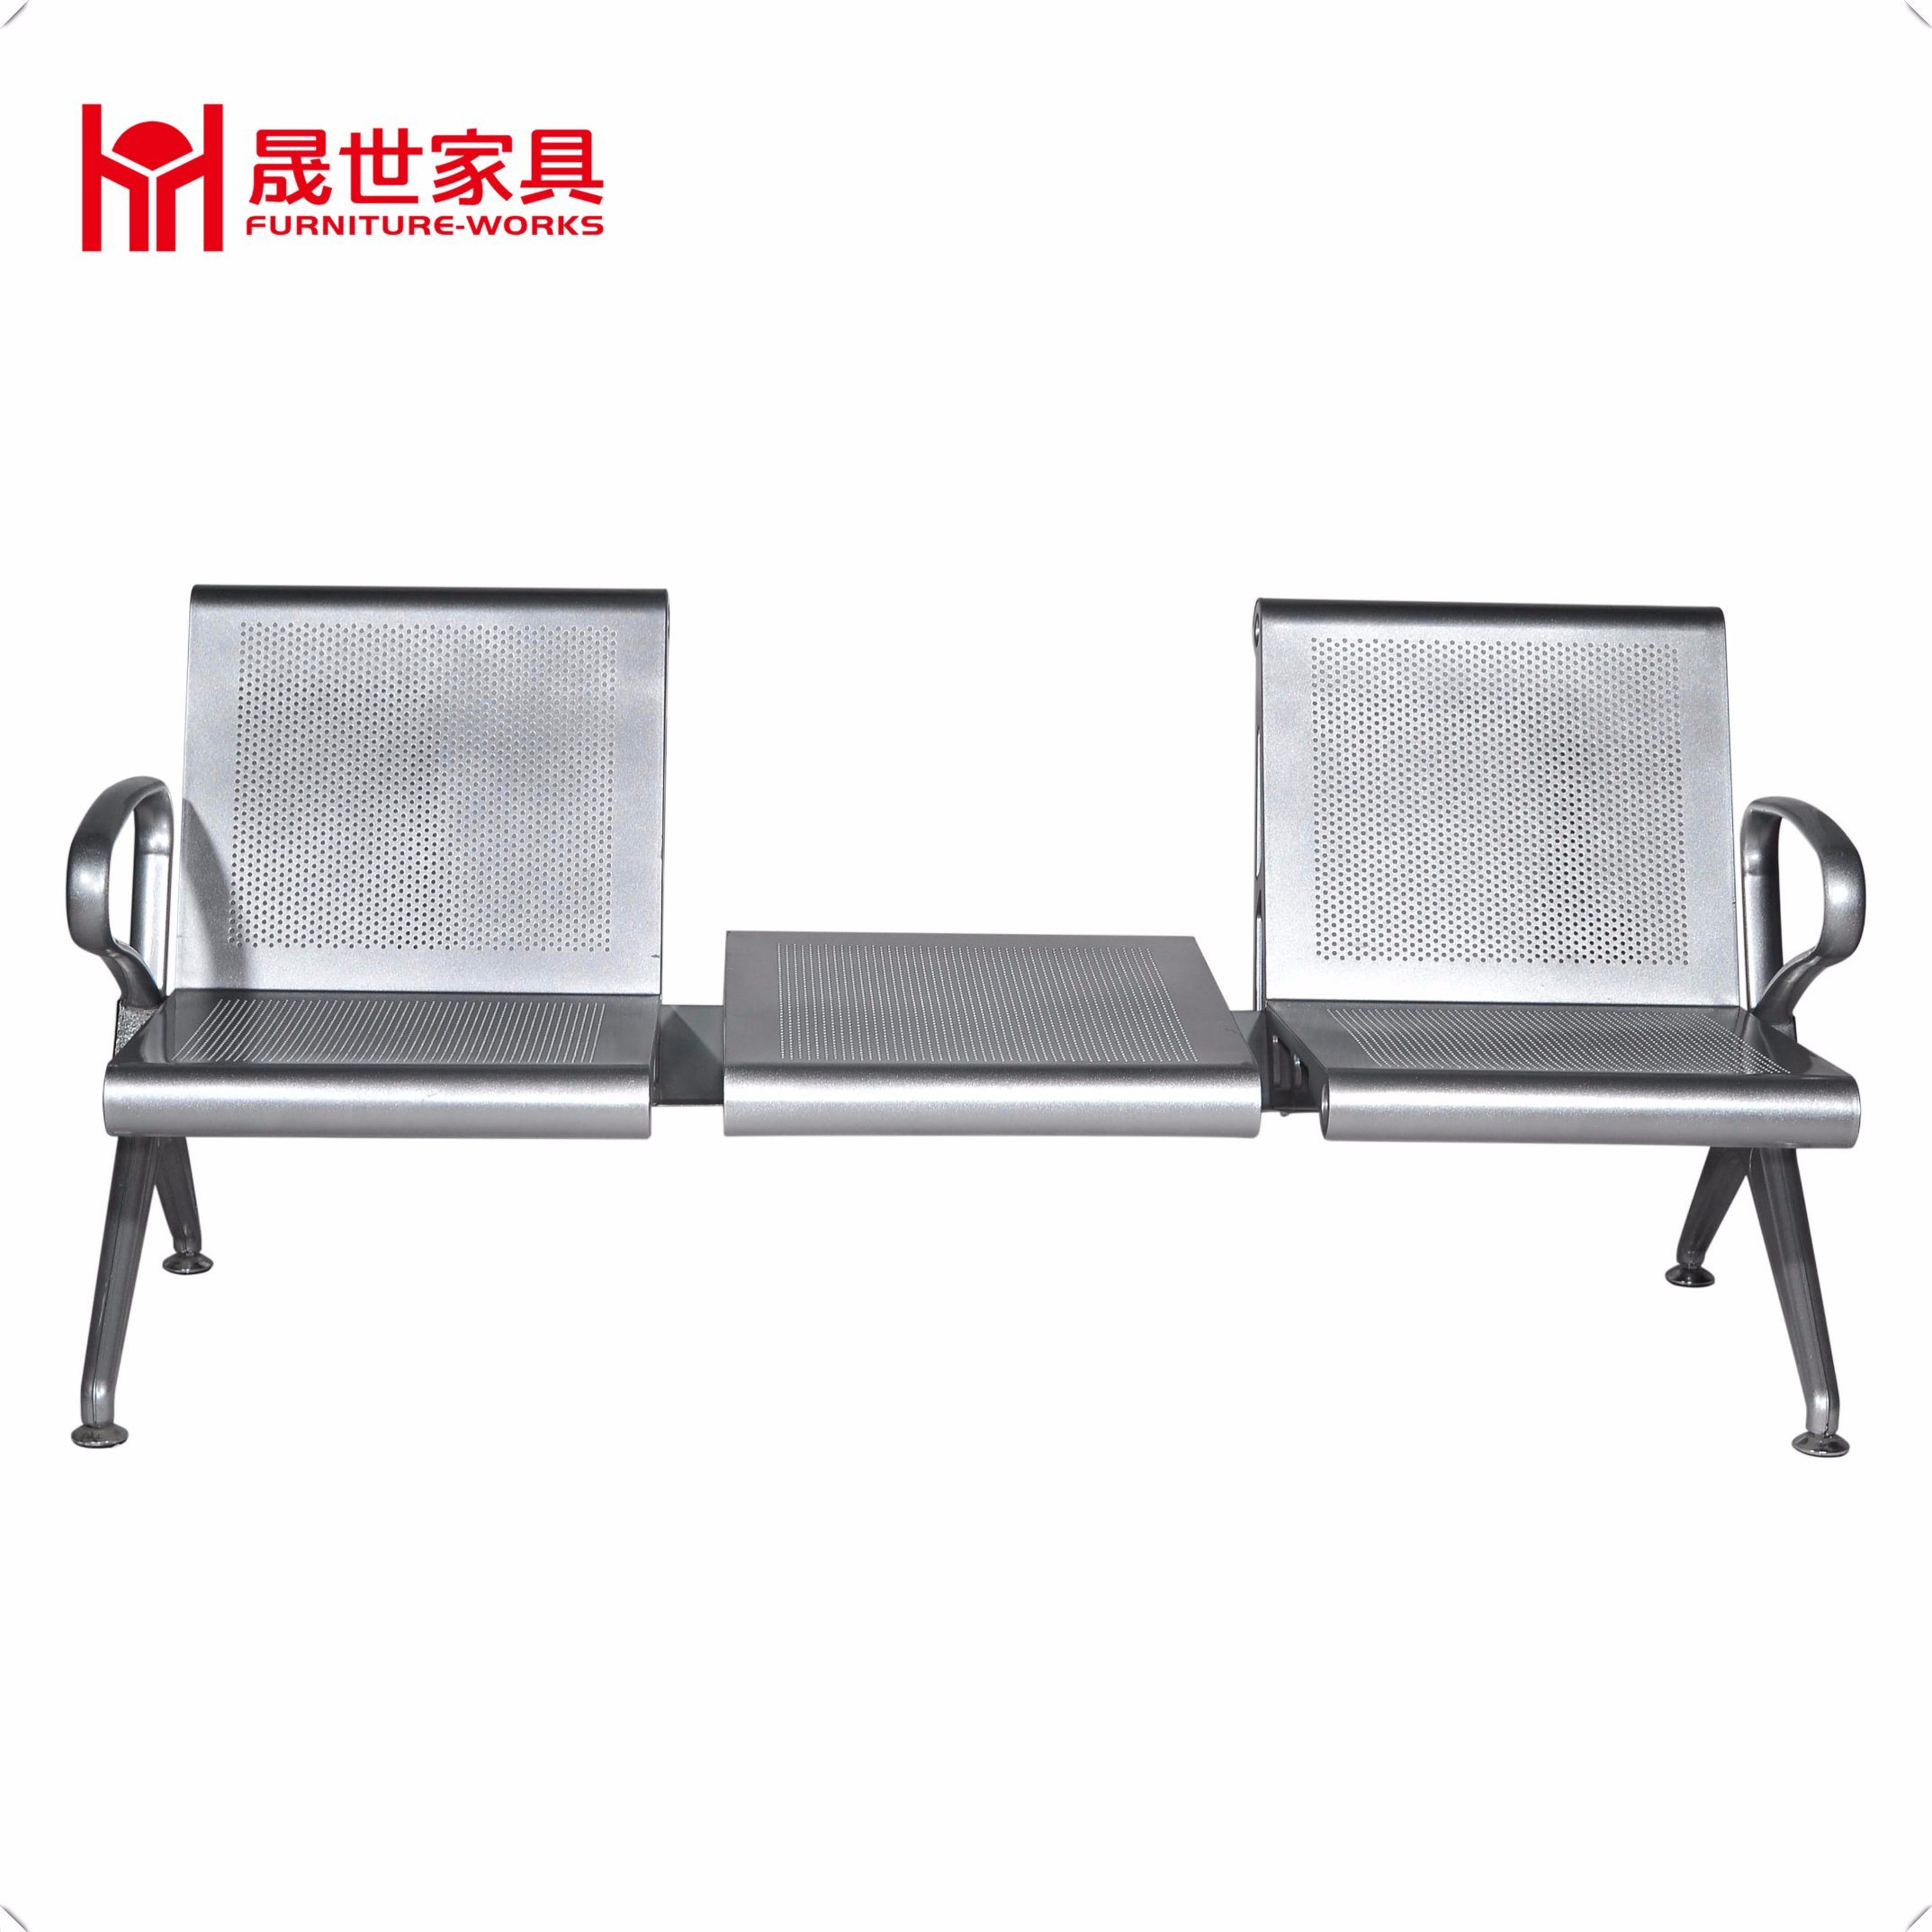 Hot Selling Cheap Price Airport Public Chair 3-Seater Waiting Chair